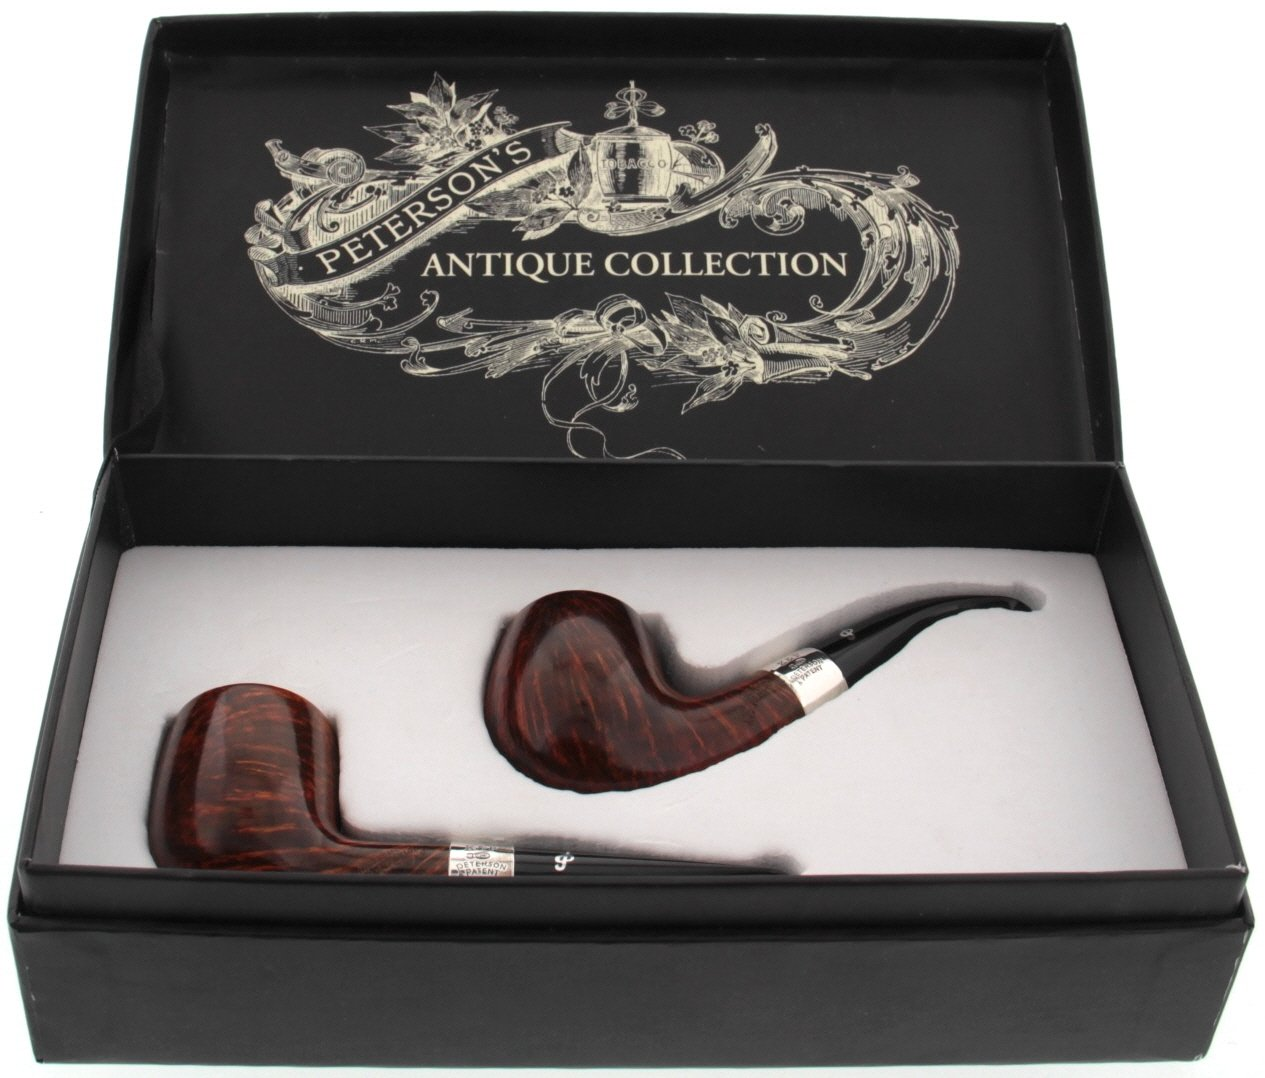 Peterson Antique Collection smooth